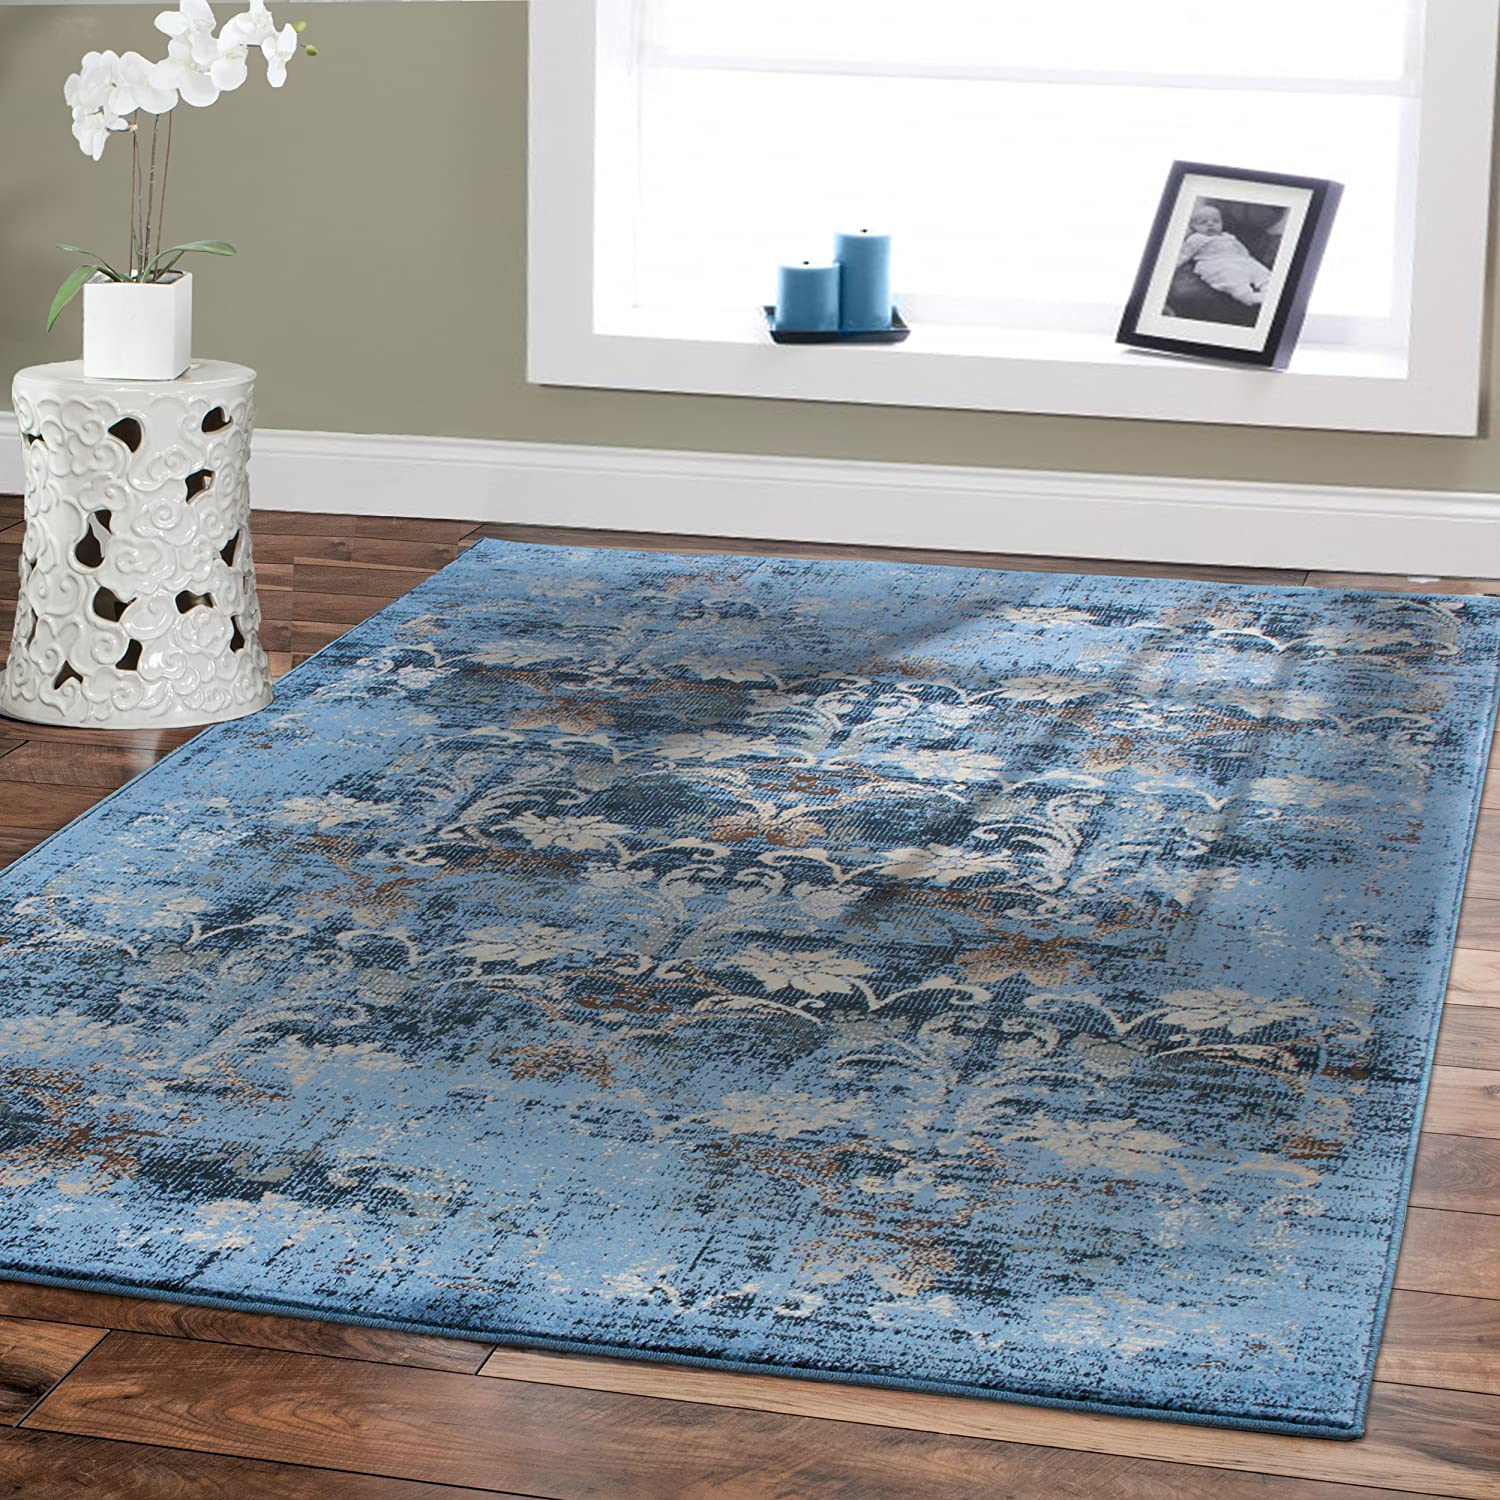 white squiggles flight htm blue textile navy bookmark rug arrow linear wool line rugs area